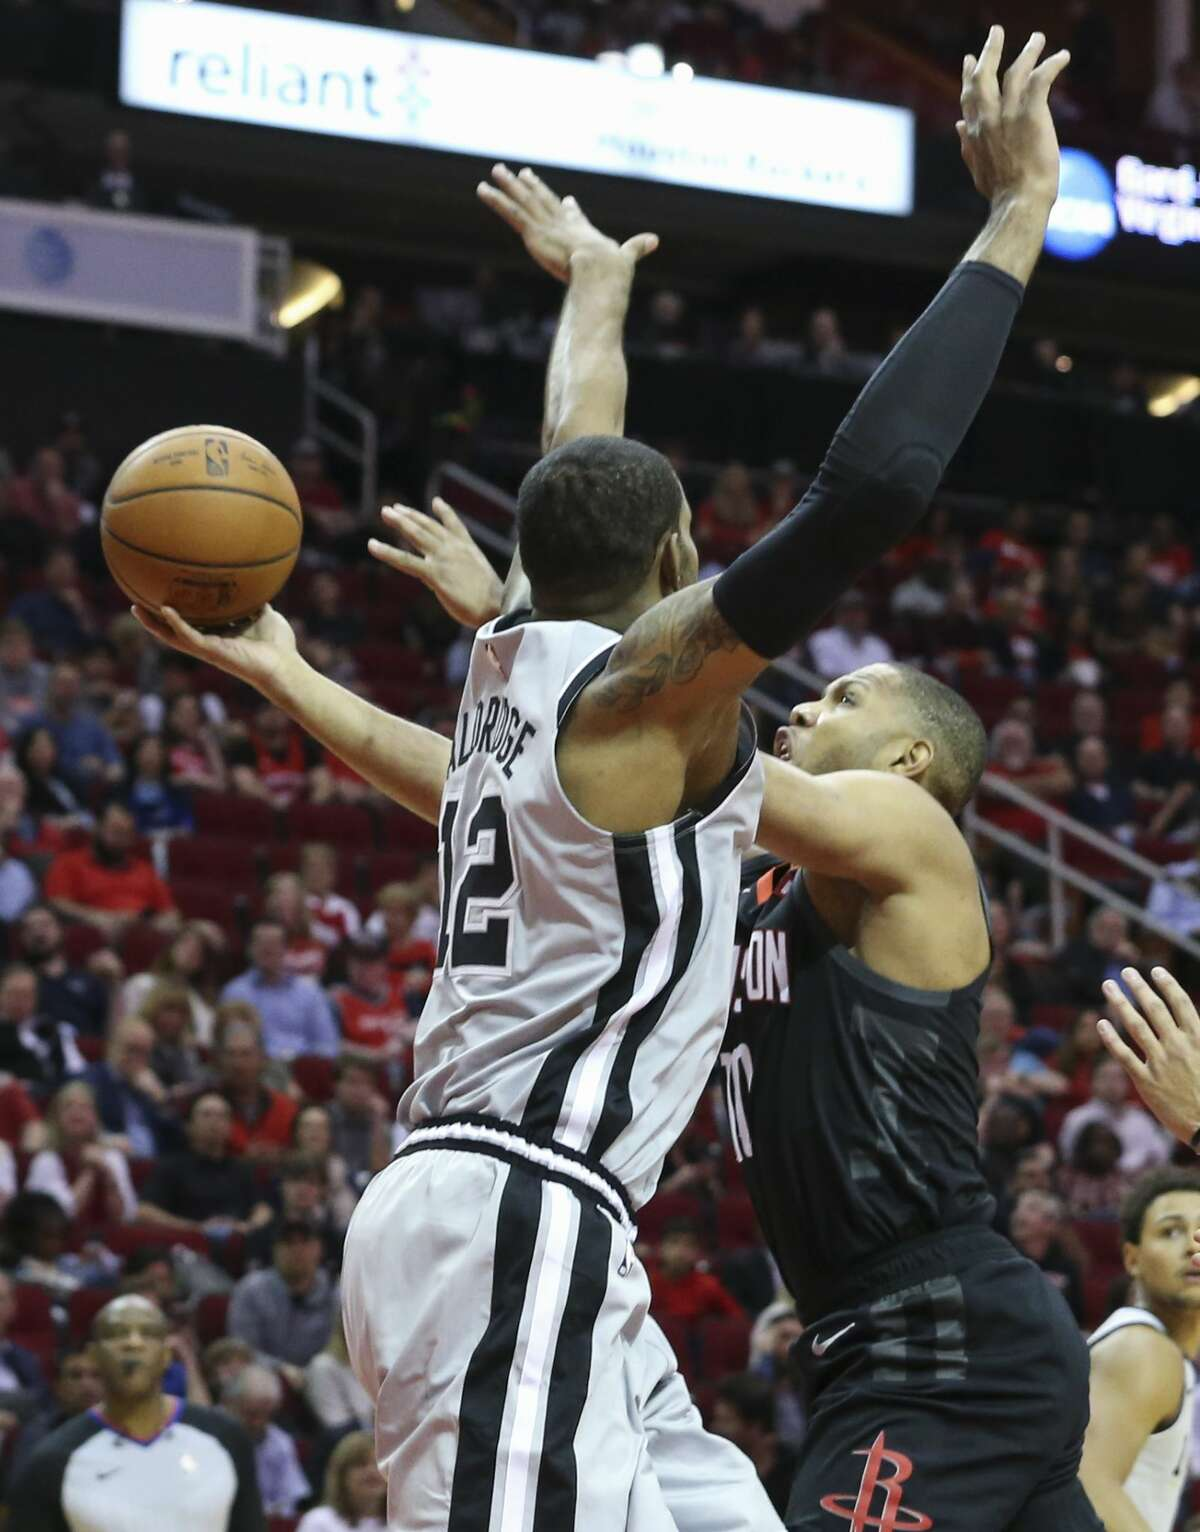 Houston Rockets guard Eric Gordon (10) is fouled by San Antonio Spurs center LaMarcus Aldridge (12) while going for the basket during the second quarter of the NBA game at Toyota Center on Friday, March 22, 2019, in Houston.